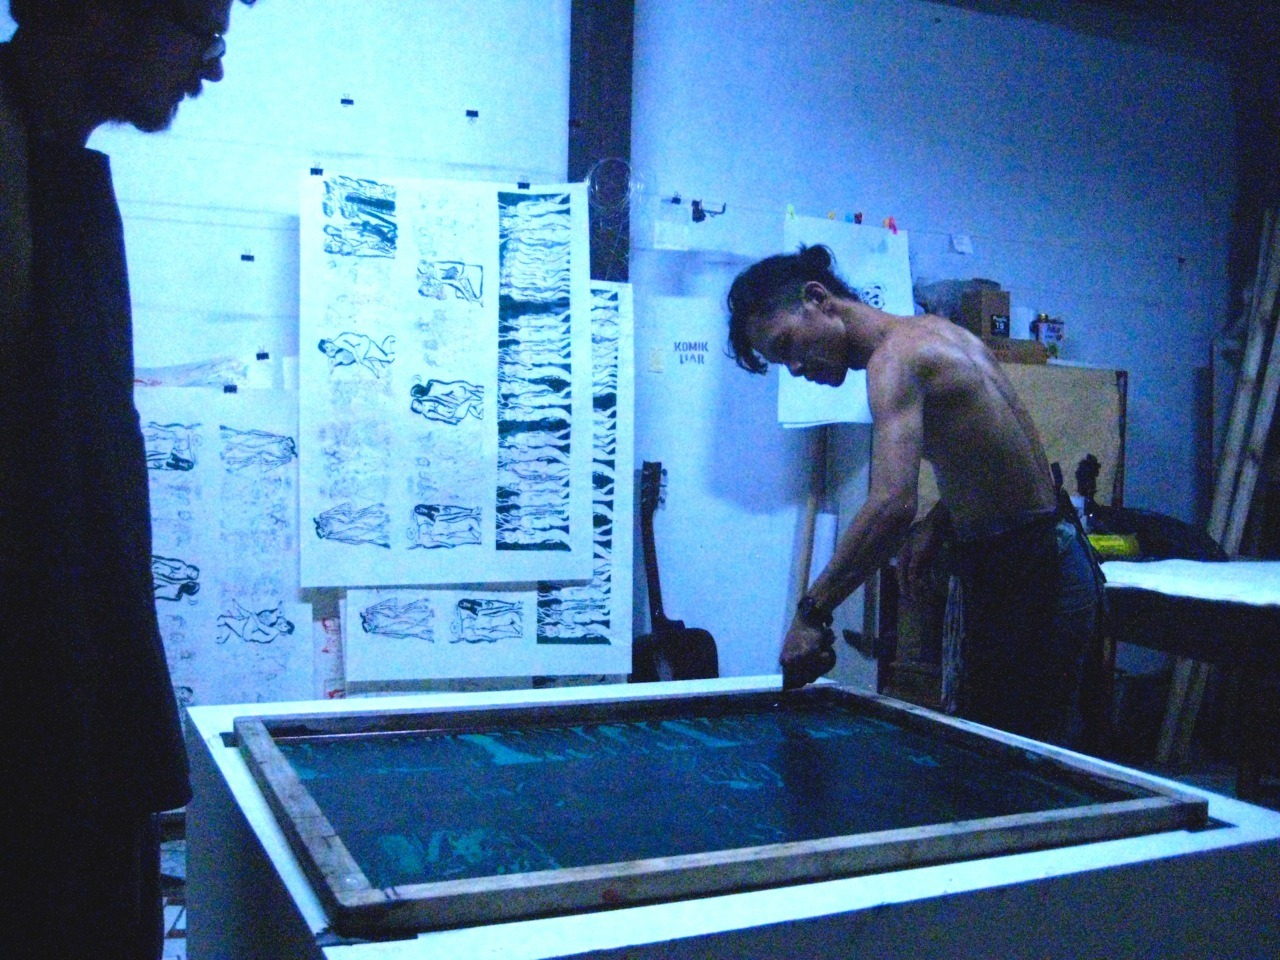 "The printing of ""Rahasia Purbakala dari Tenaga Kekal"" (Ancient Secrets of Eternal Energy), a six panel fold out book, silkscreened by hand and published October 2011 at Joglo Jago Studios in Yogyakarta Indonesia by Arrington de Dionyso assisted by Rudy Atj. Copies available in the US from www.arringtondedionyso.etsy.com"